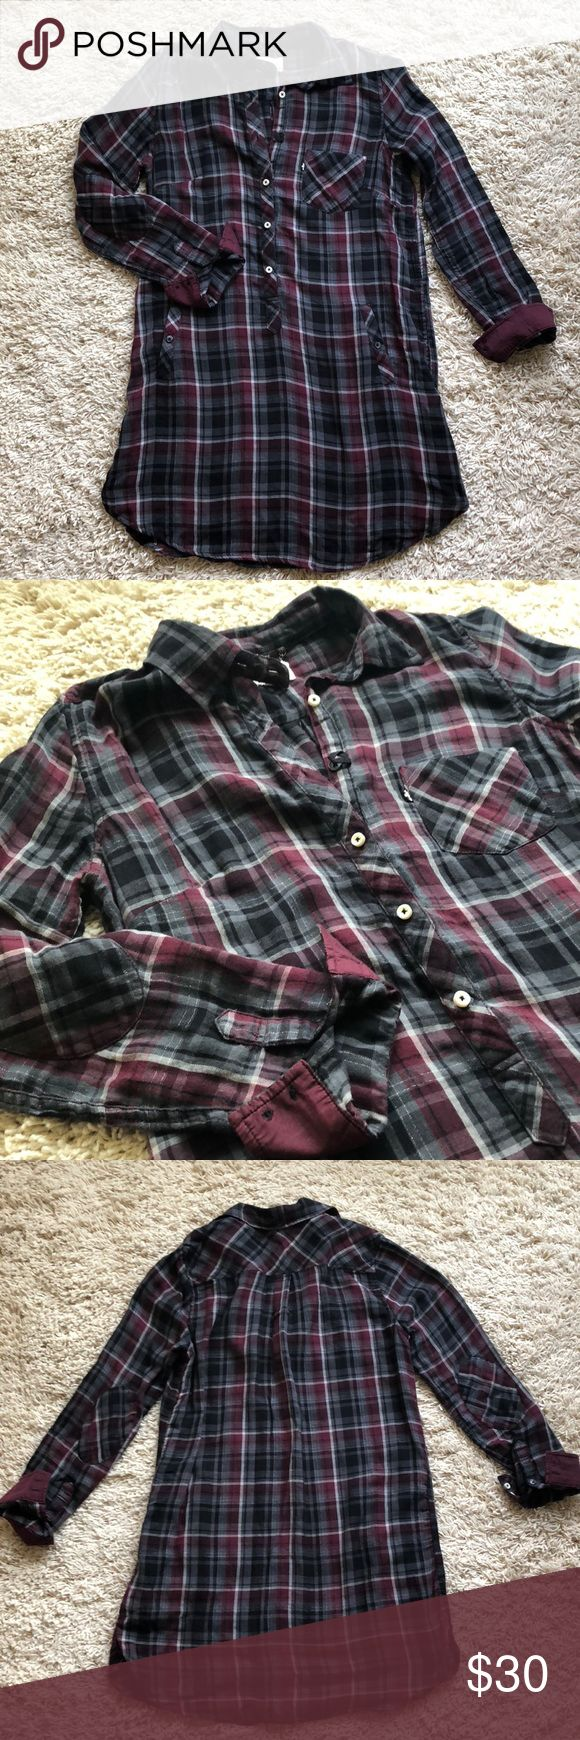 Levi's Double Cloth Plaid Tunic Shirt Cute shirt dress or tunic for those taller. Fabric has silver lurex in it. Great condition! Levi's Tops Tunics